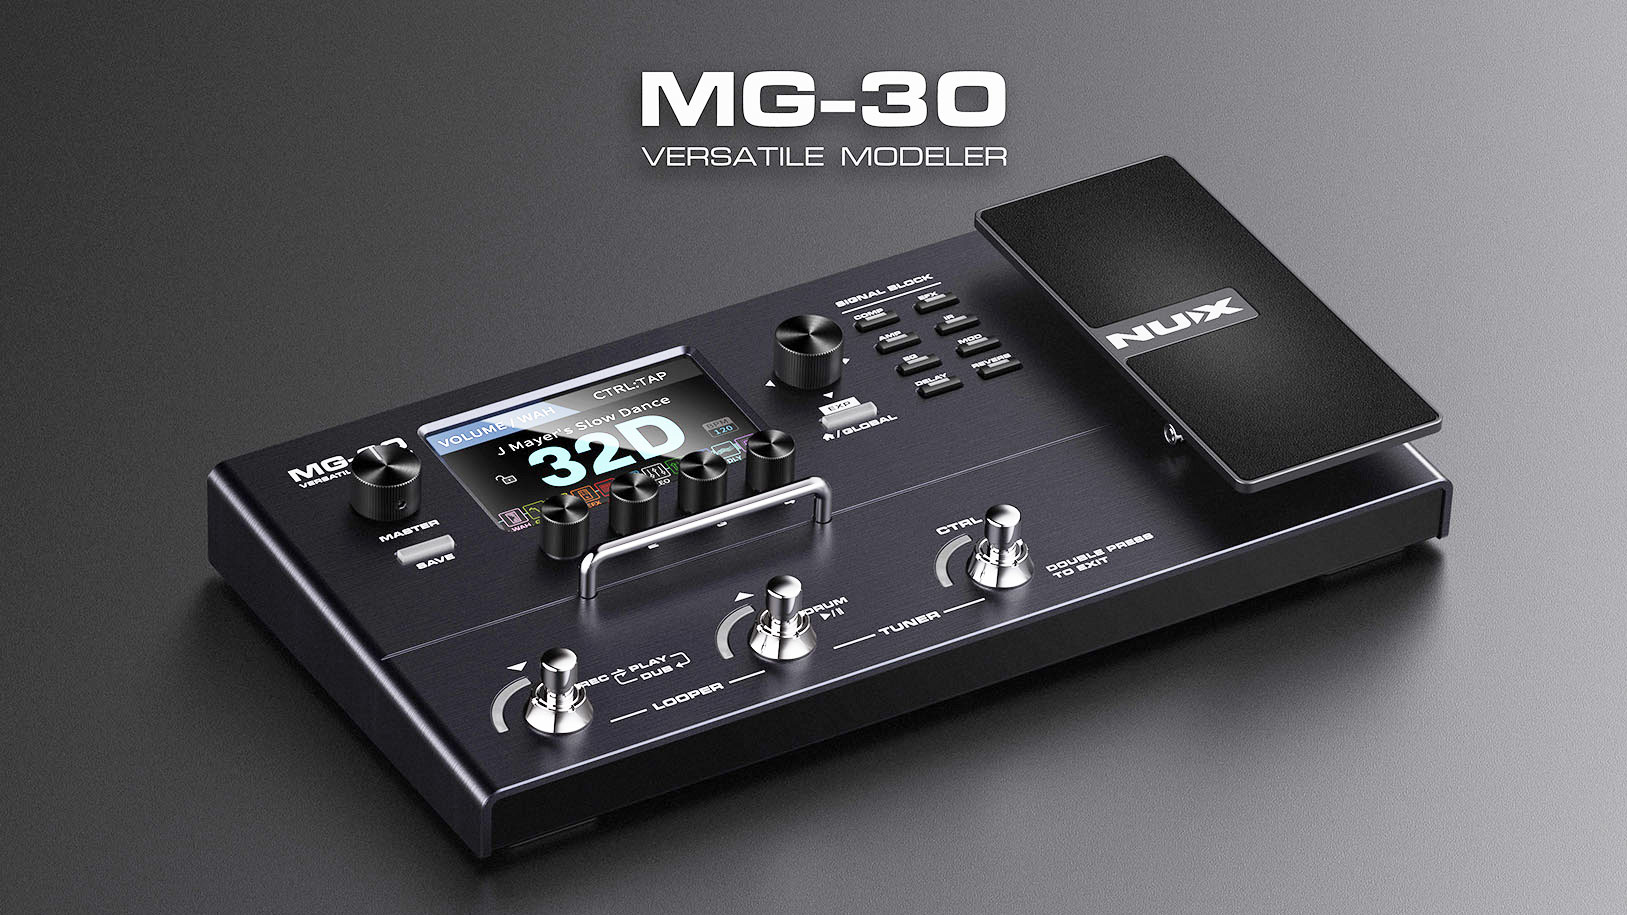 NUX MG-30 - This is simply amazing!